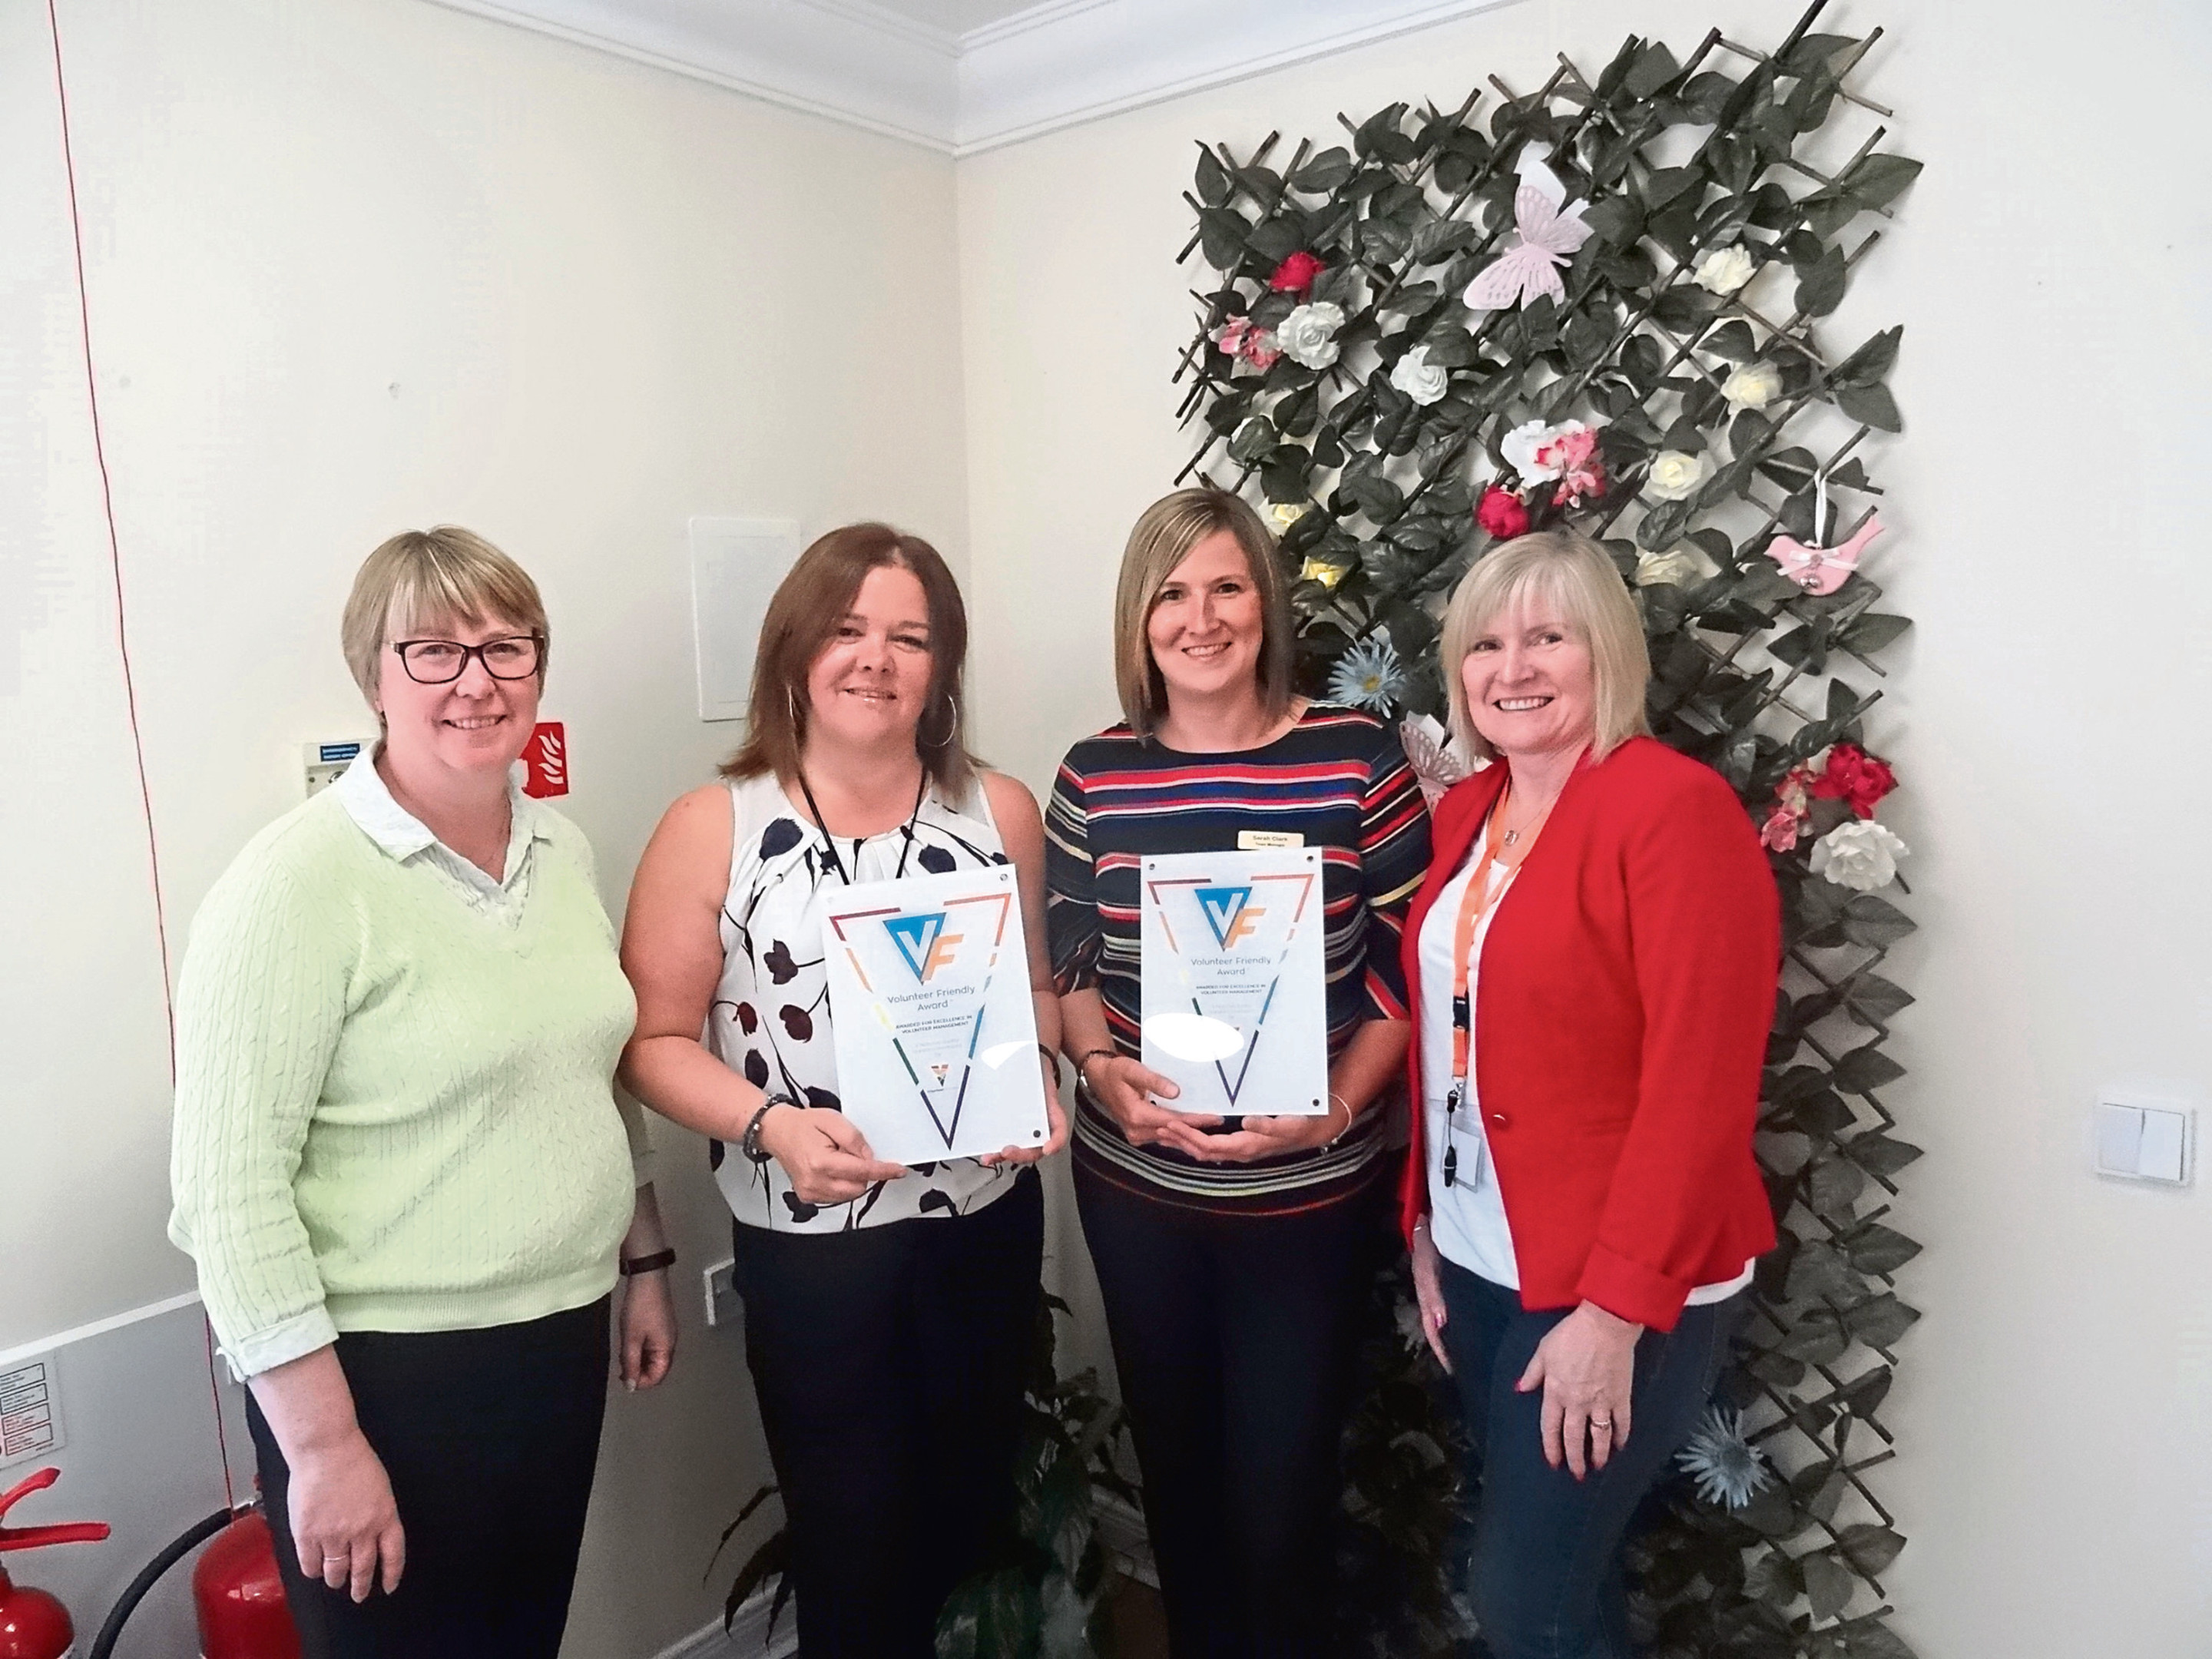 Picture shows (from left) Angela Smith, resource manager Dundee Health and Social Care Partnership; Sarah Clark, team manager at Craigie House; Lynn Thain, team manager at Menzieshill House and Wendy Taylor.